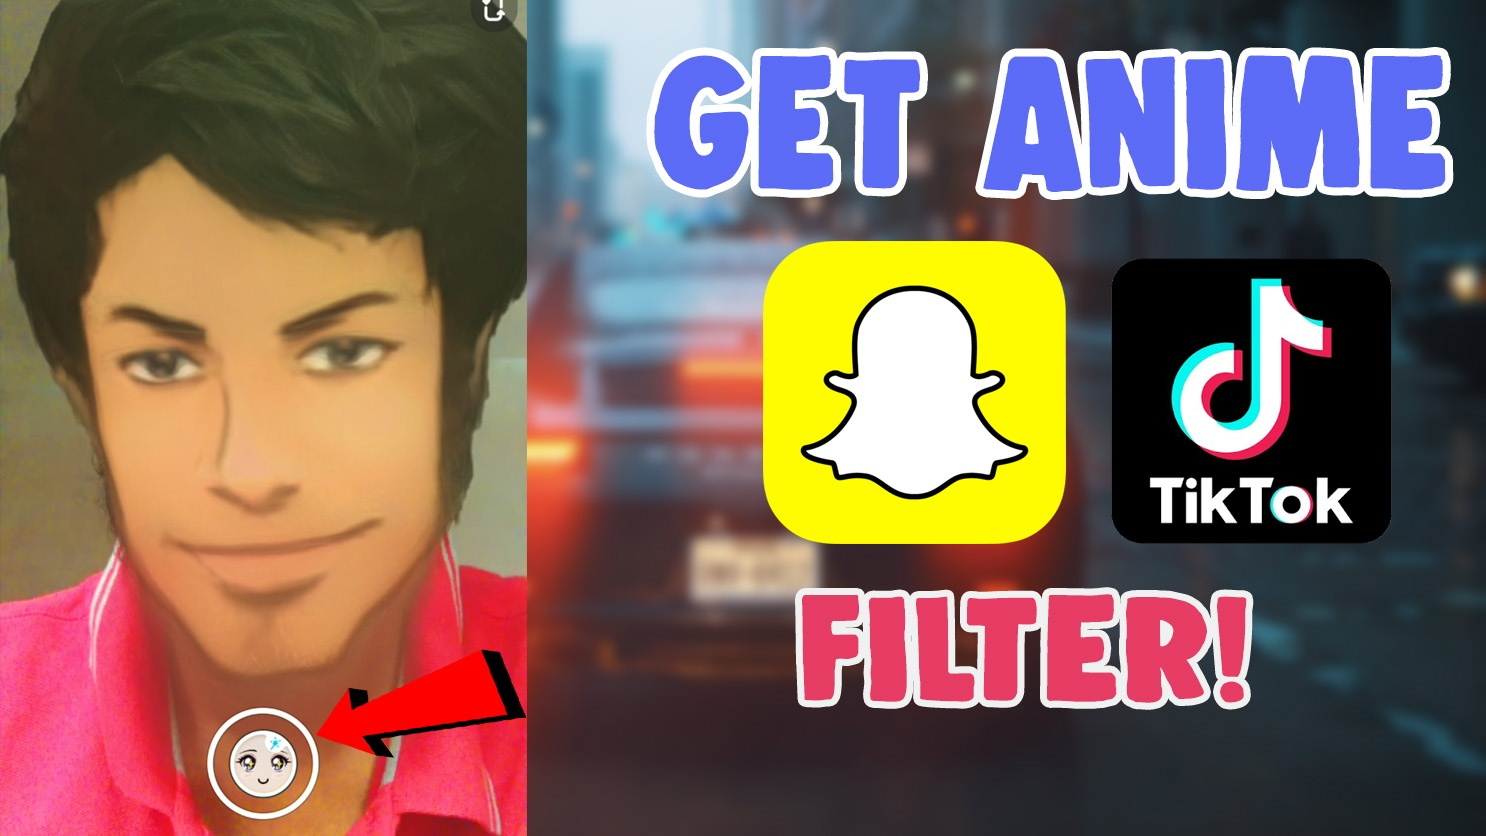 How To Get Tiktok Comic Anime Cartoon Filter Effect And Snapchat Instagram Salu Network